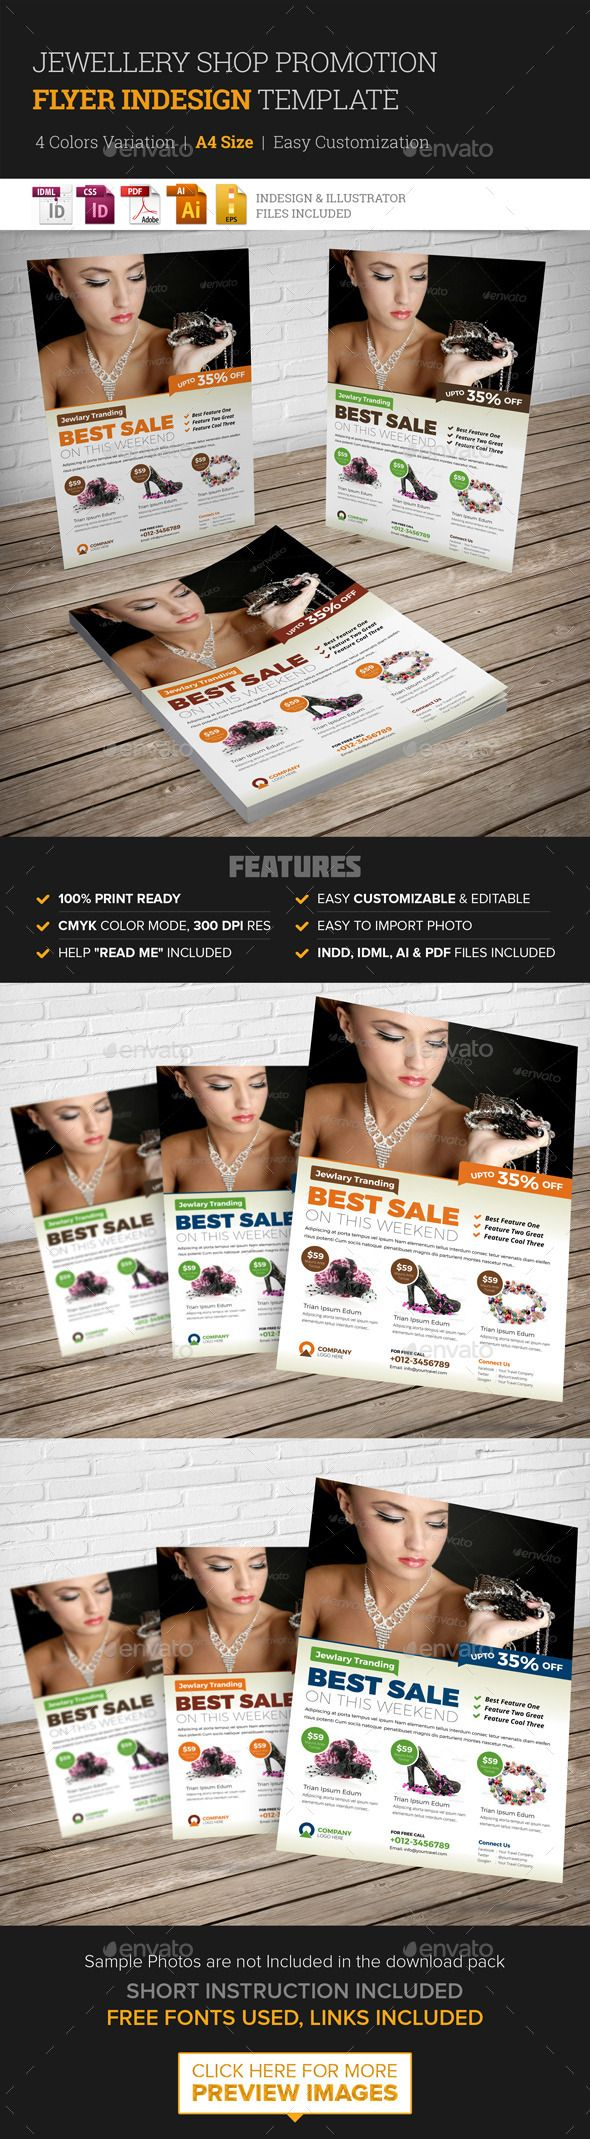 Jewellery Shop Promotion Flyer Indesign Template | Volantes